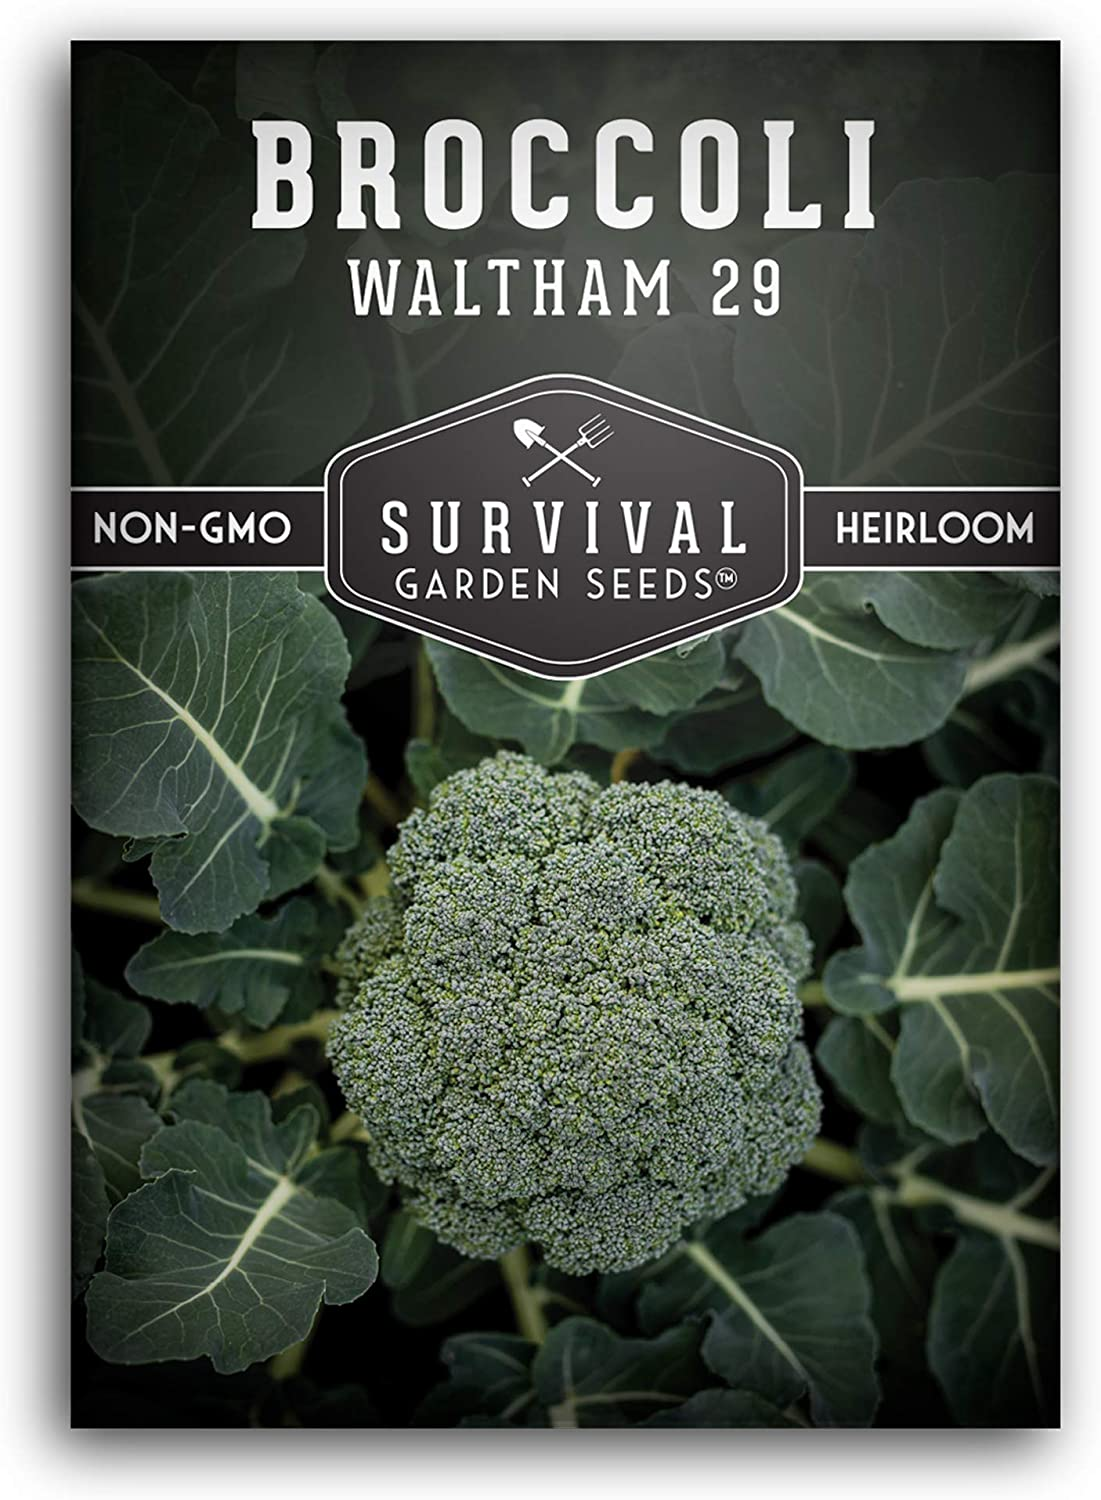 Survival Garden Seeds - Waltham 29 Broccoli Seed for Planting - Packet with Instructions to Plant and Grow Your Home Vegetable Garden - Non-GMO Heirloom Variety